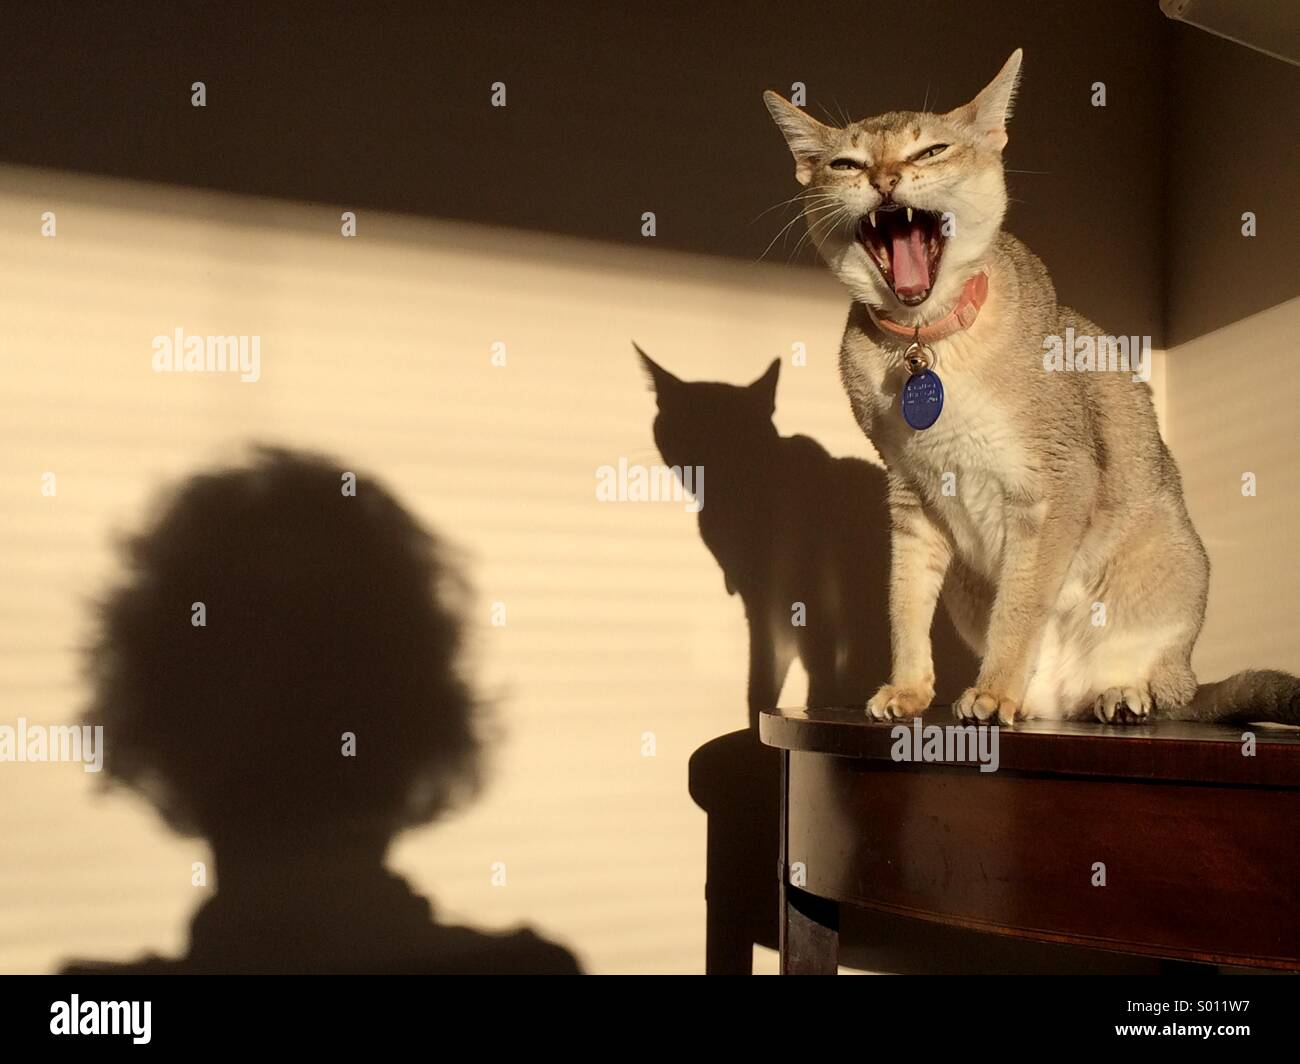 Cat yawning hissing at person seen as shadow - Stock Image